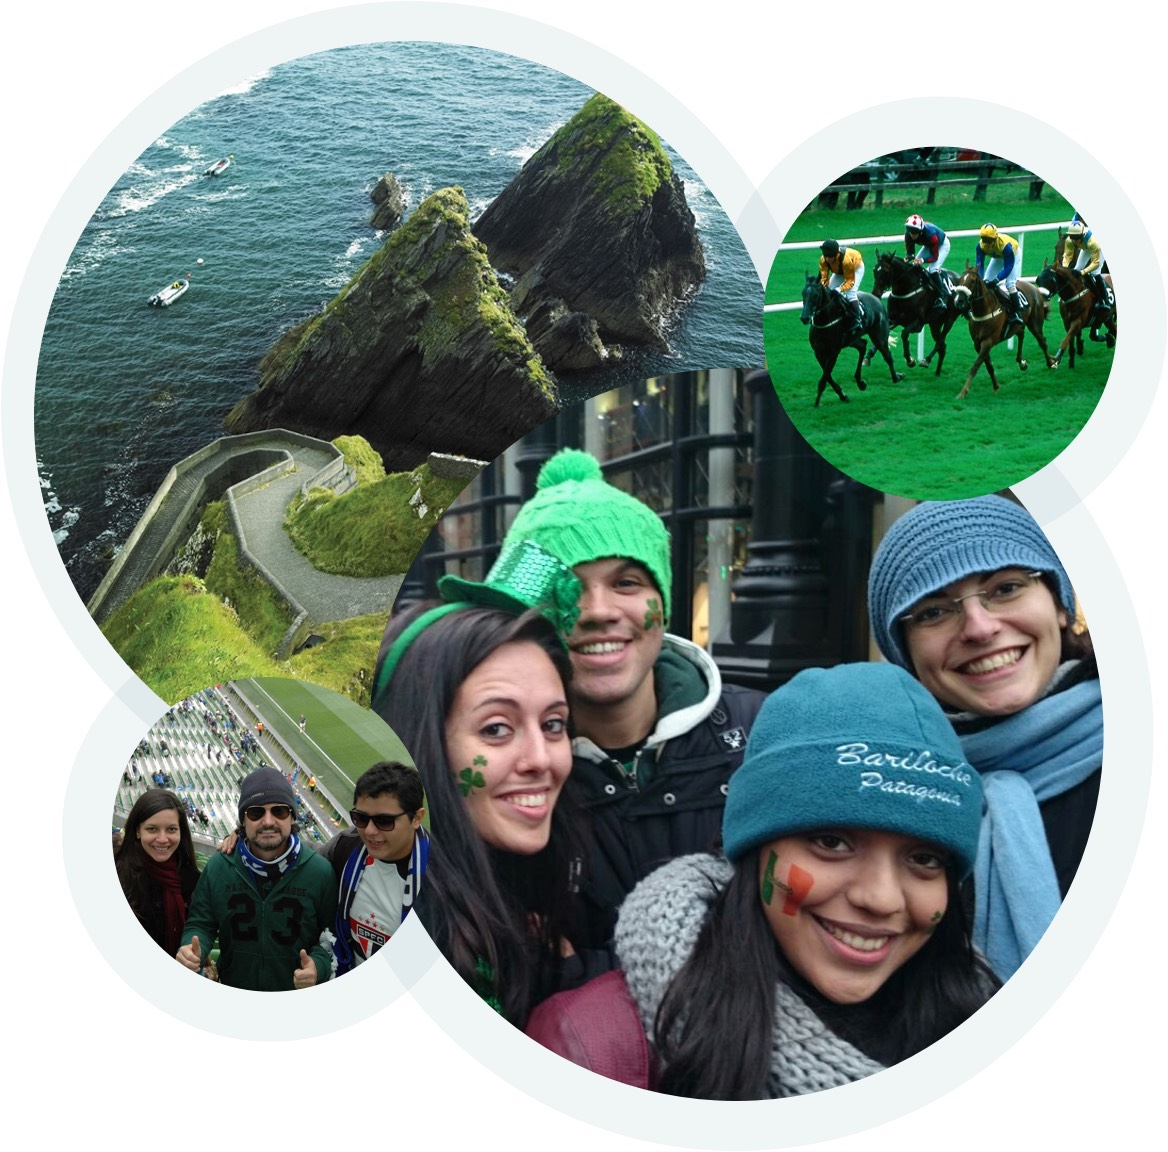 Discover Ireland at the Weekend